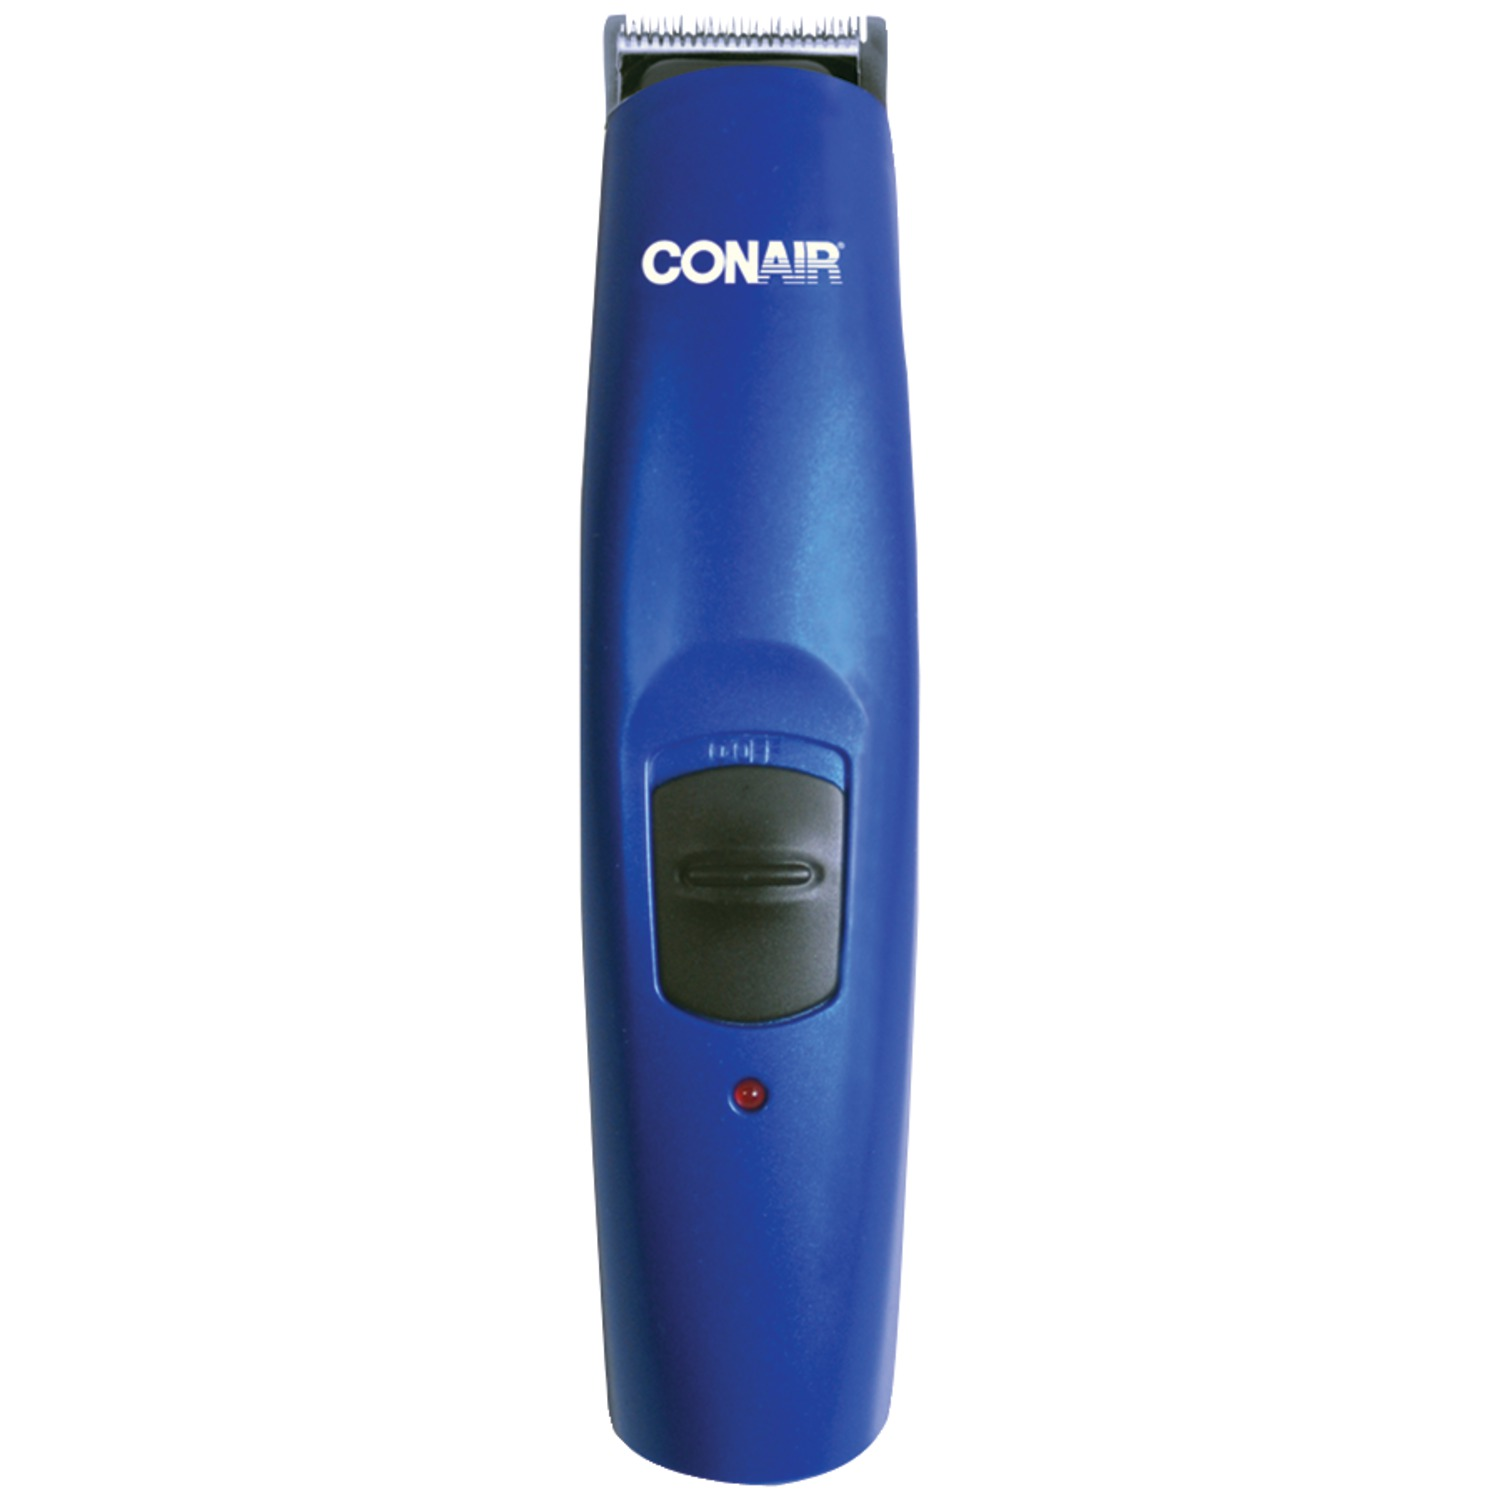 Conair Gmt10rcsb All-in-one Beard & Mustache Trimmer